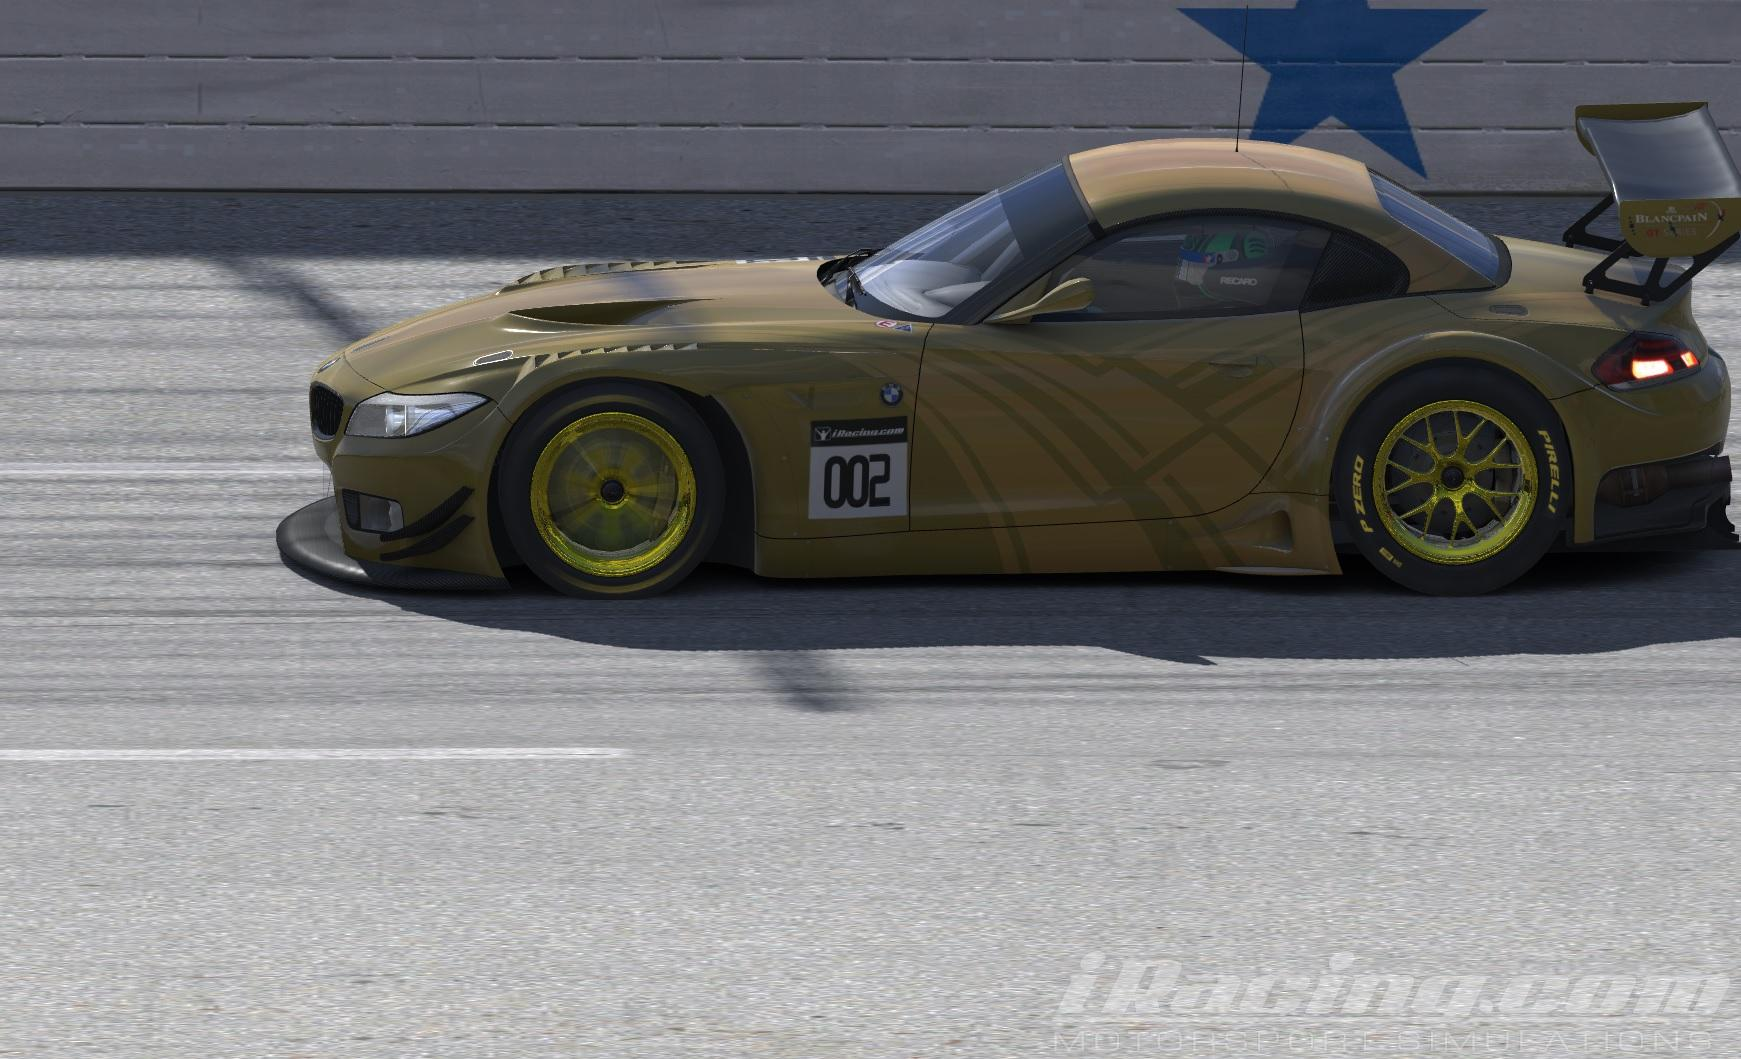 Bmw Z4 Gt3 Gold Carbon With Gold Stripes By Chris Bull